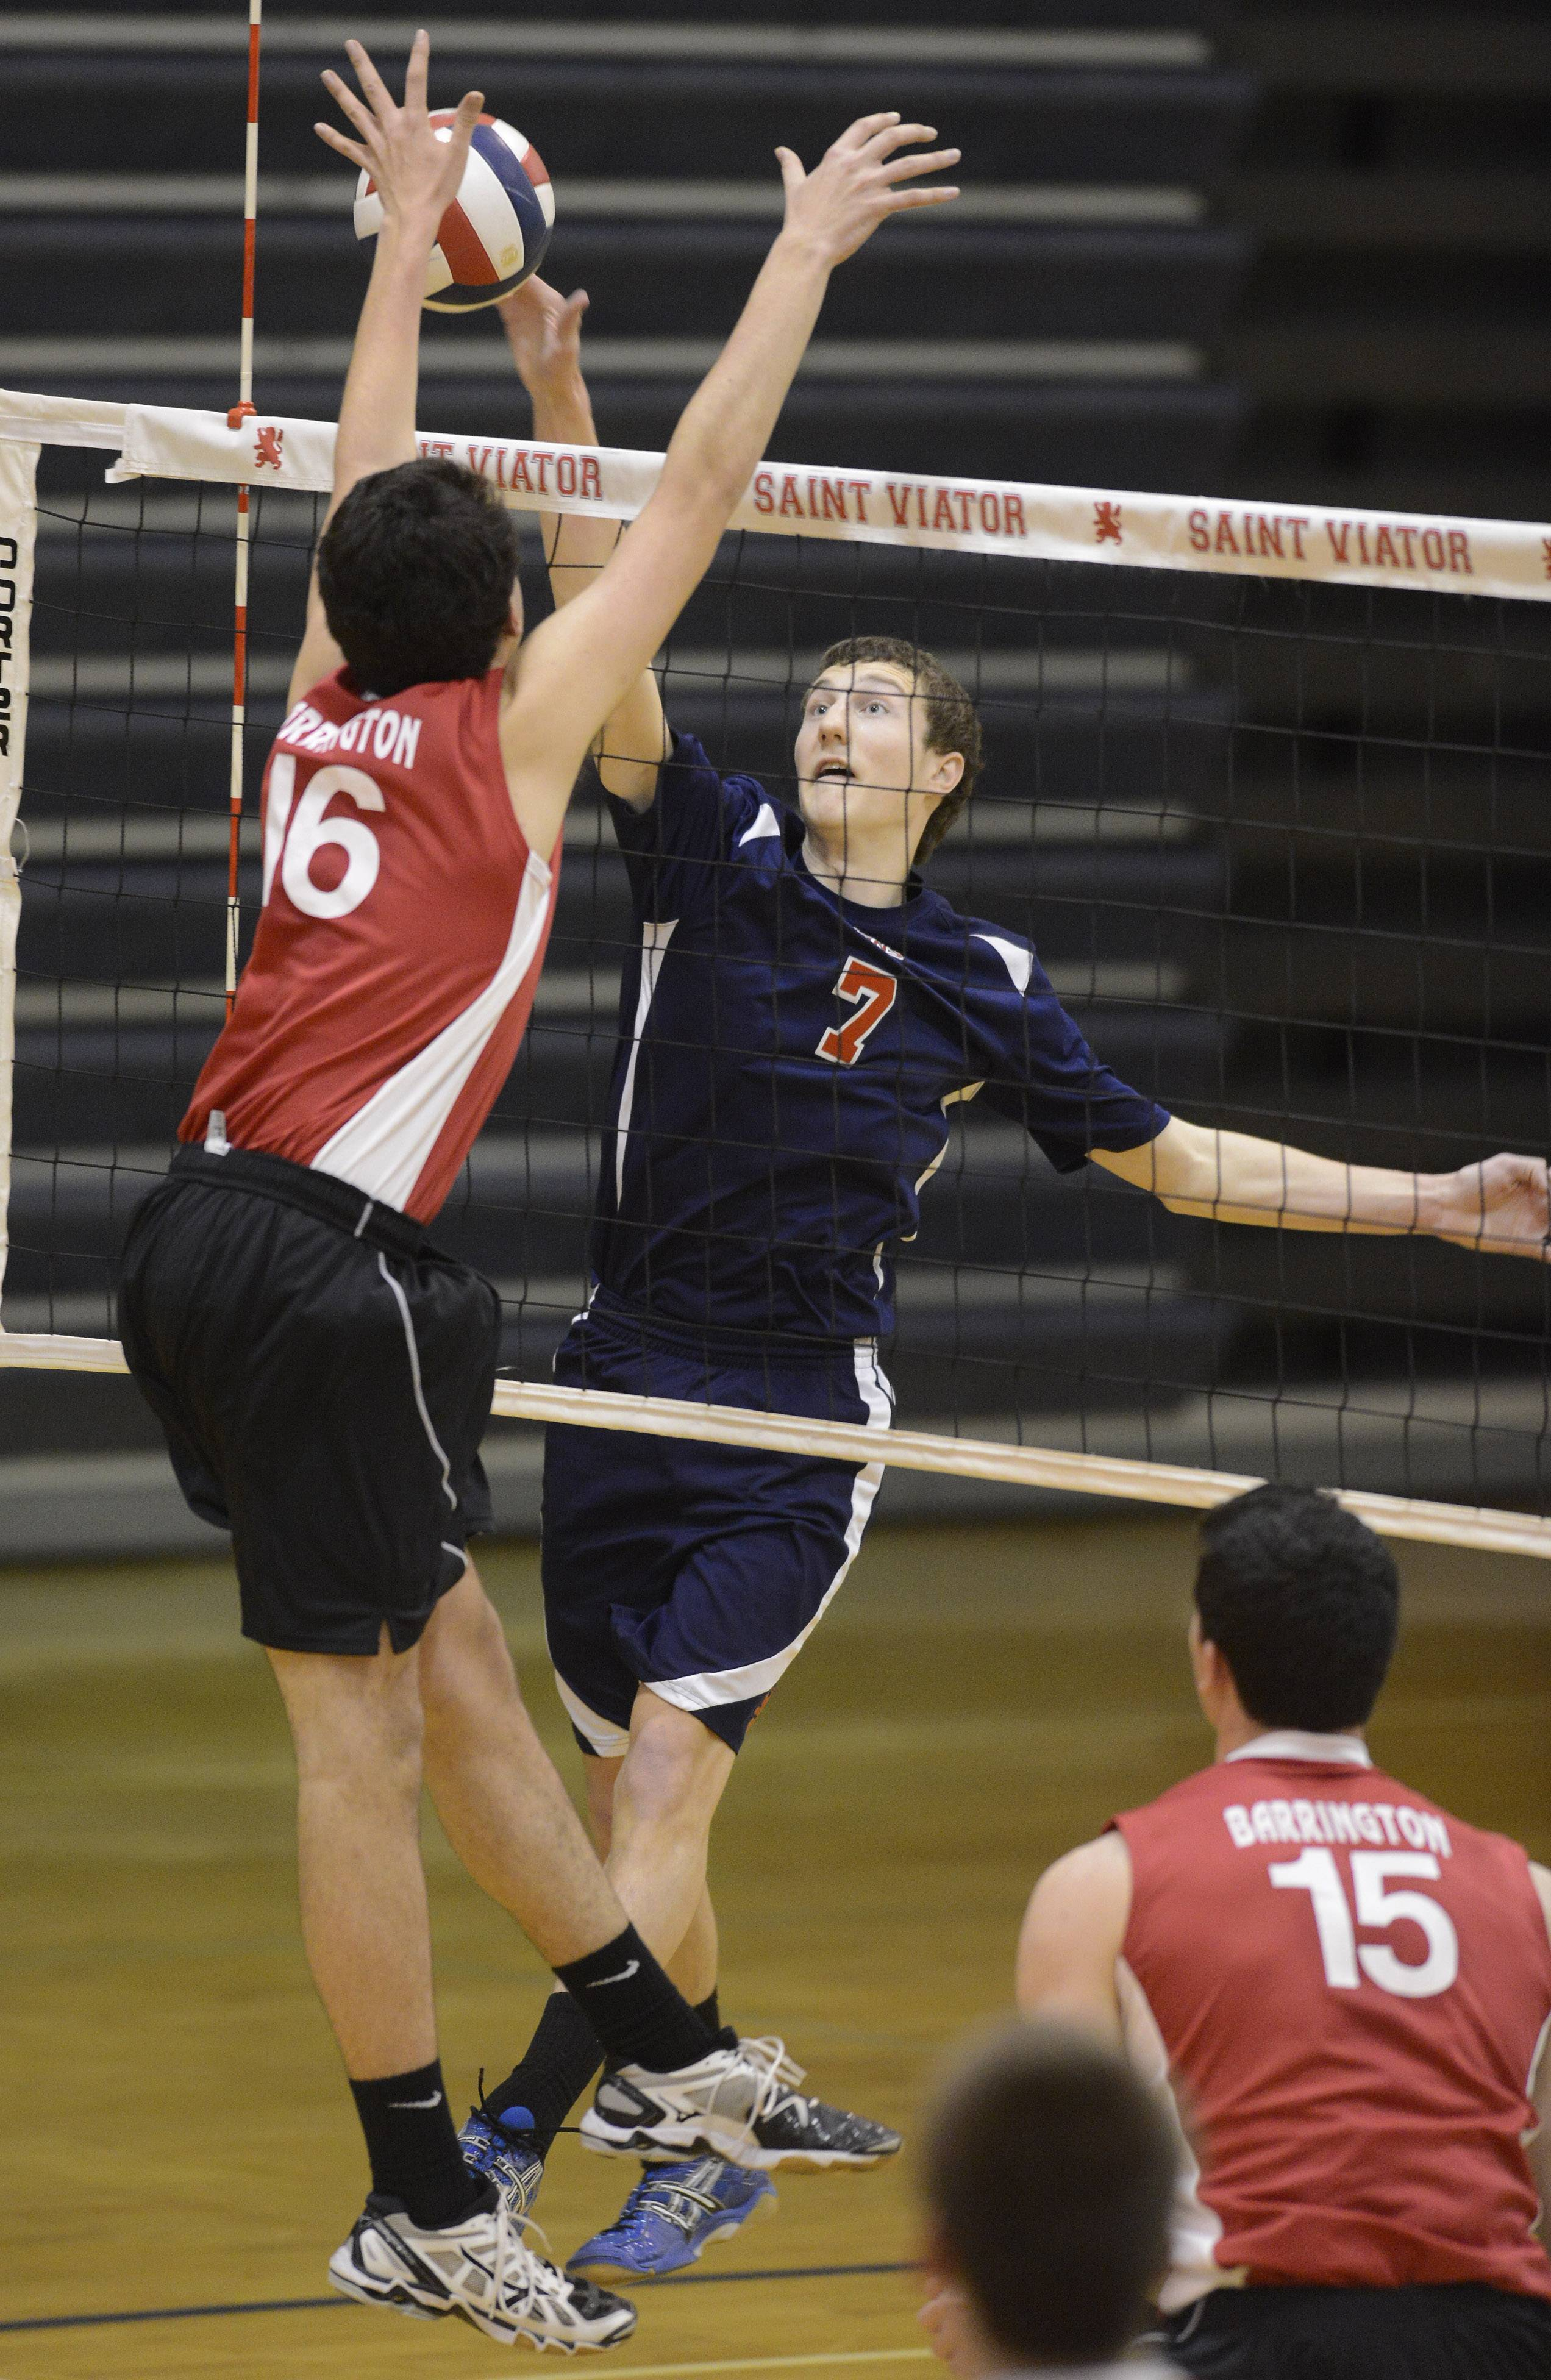 St. Viator's Ethan Wolf, right, tries to get the ball past Barrington's Mike Amato on Tuesday.